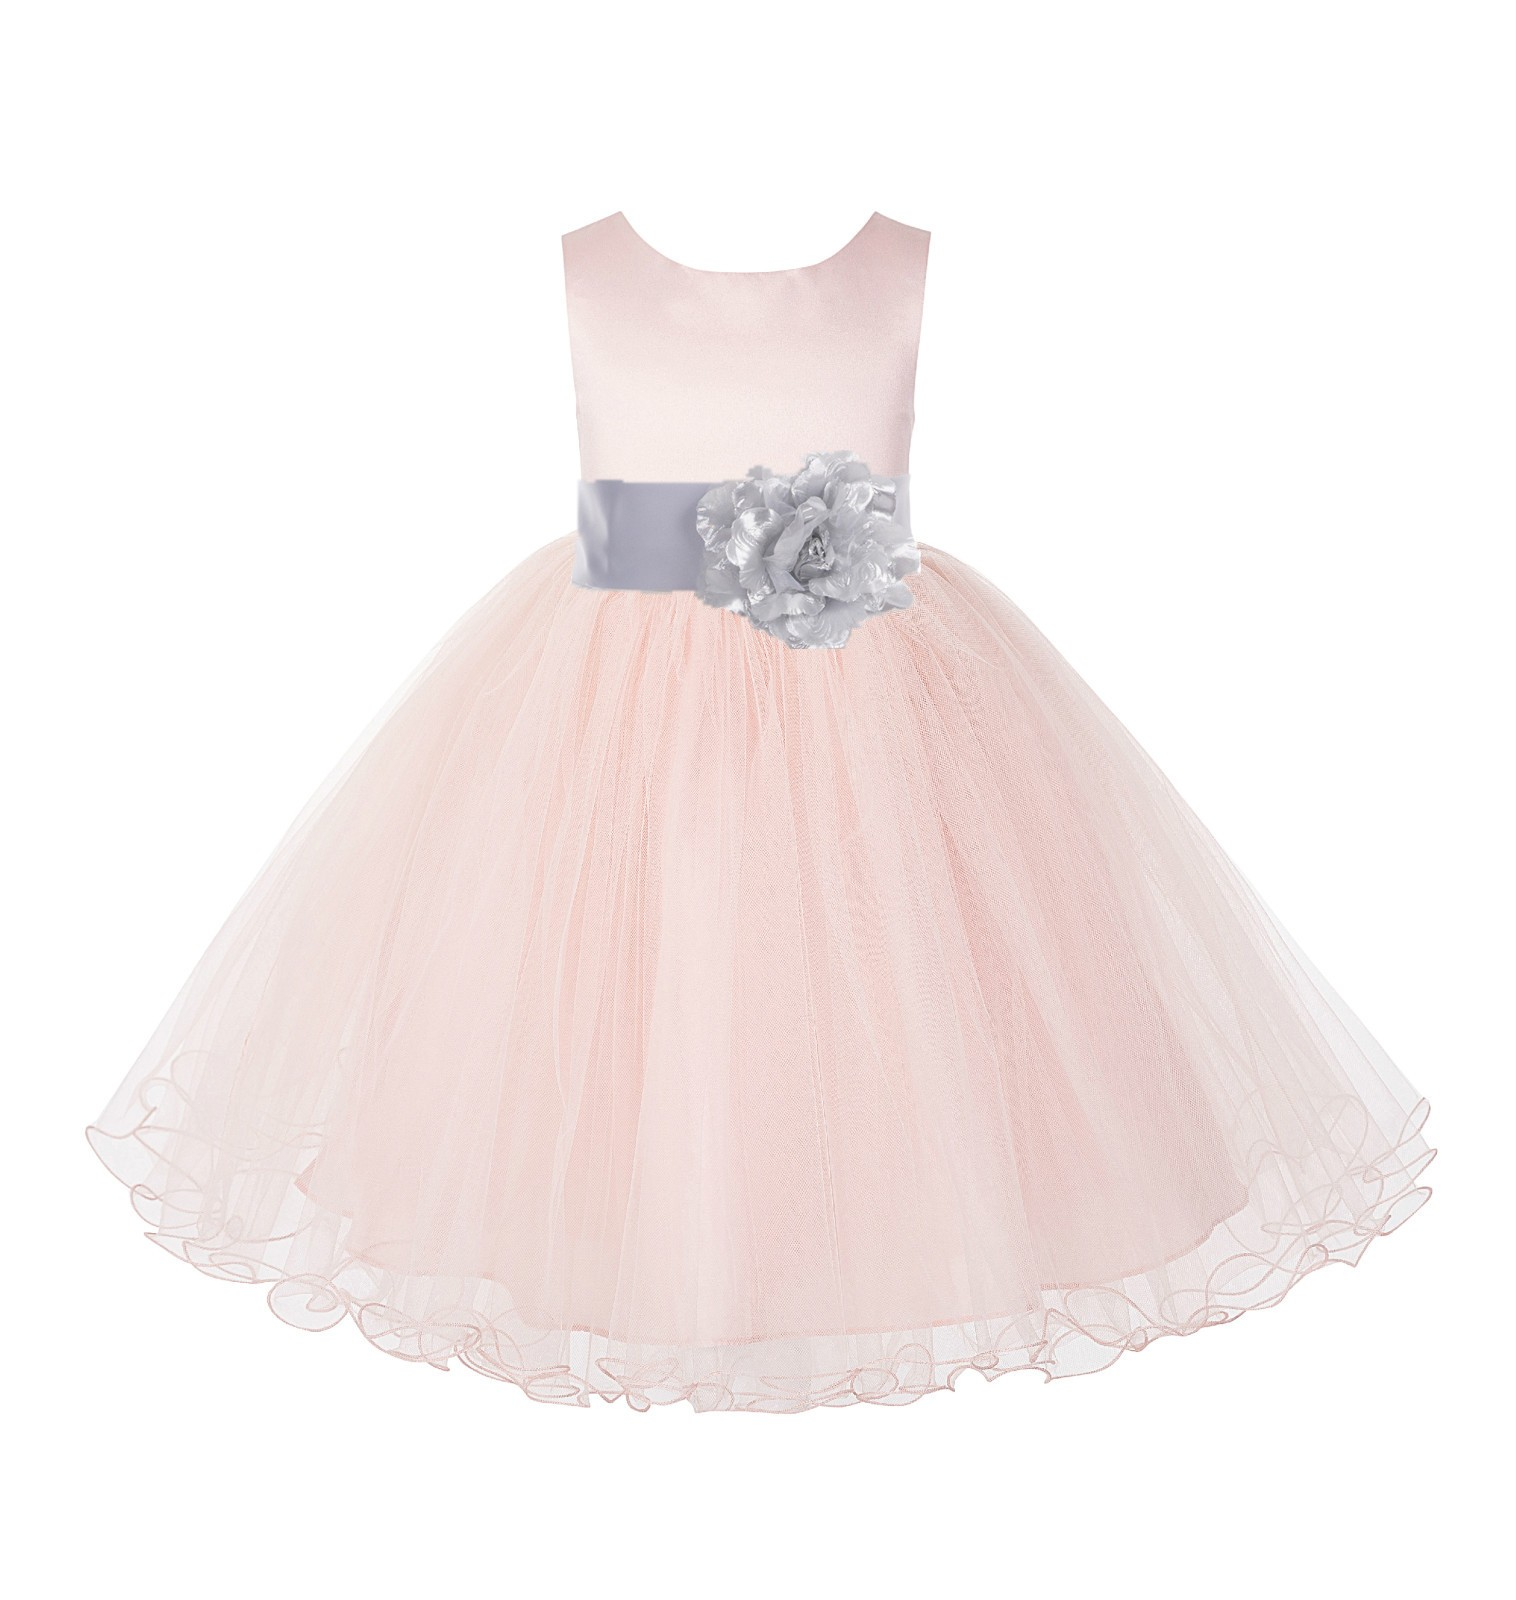 Blush Pink / Silver Tulle Rattail Edge Flower Girl Dress Pageant Recital 829S